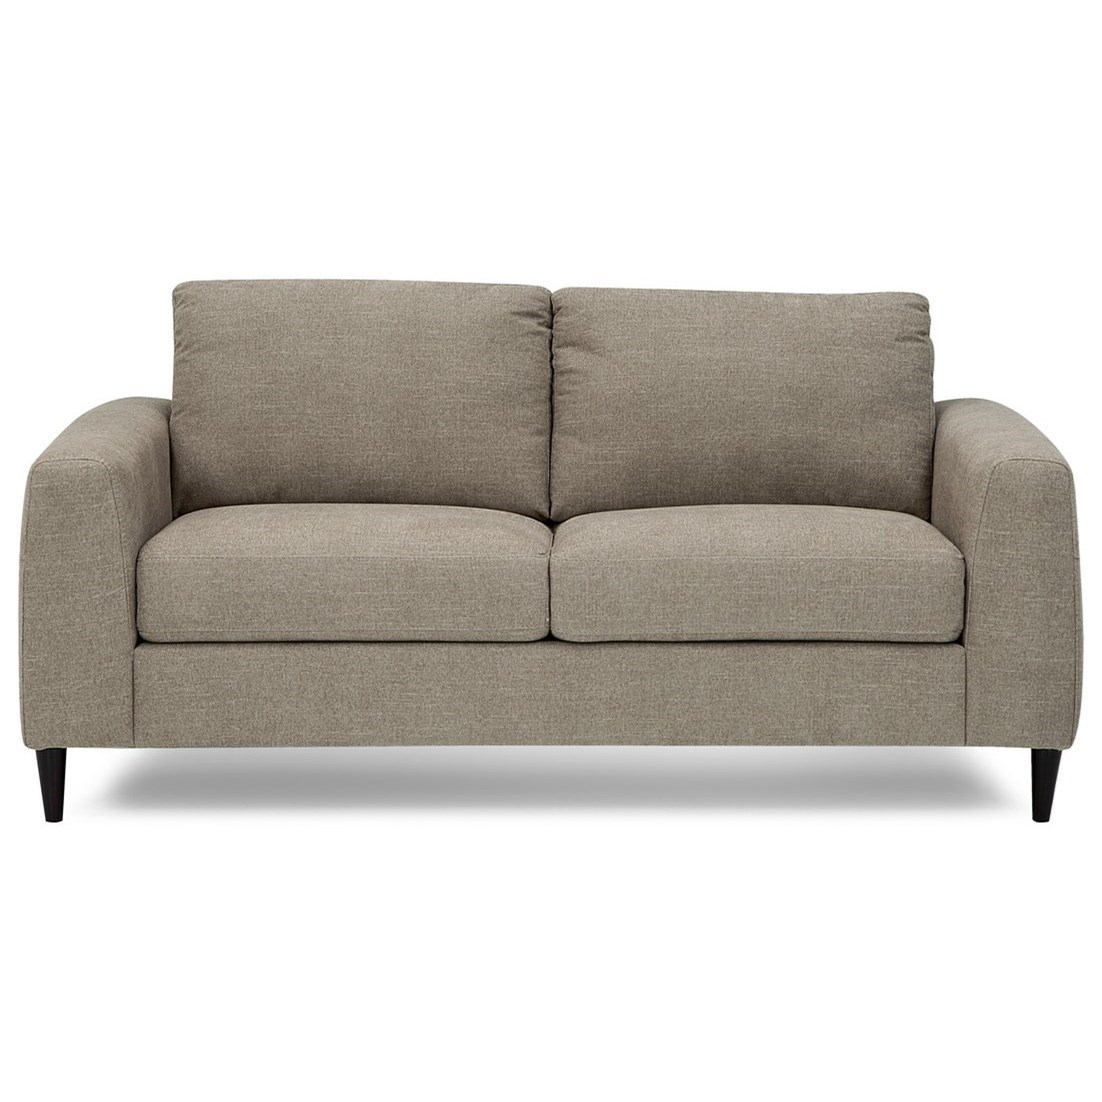 Atticus Love Seat by Palliser at Furniture and ApplianceMart